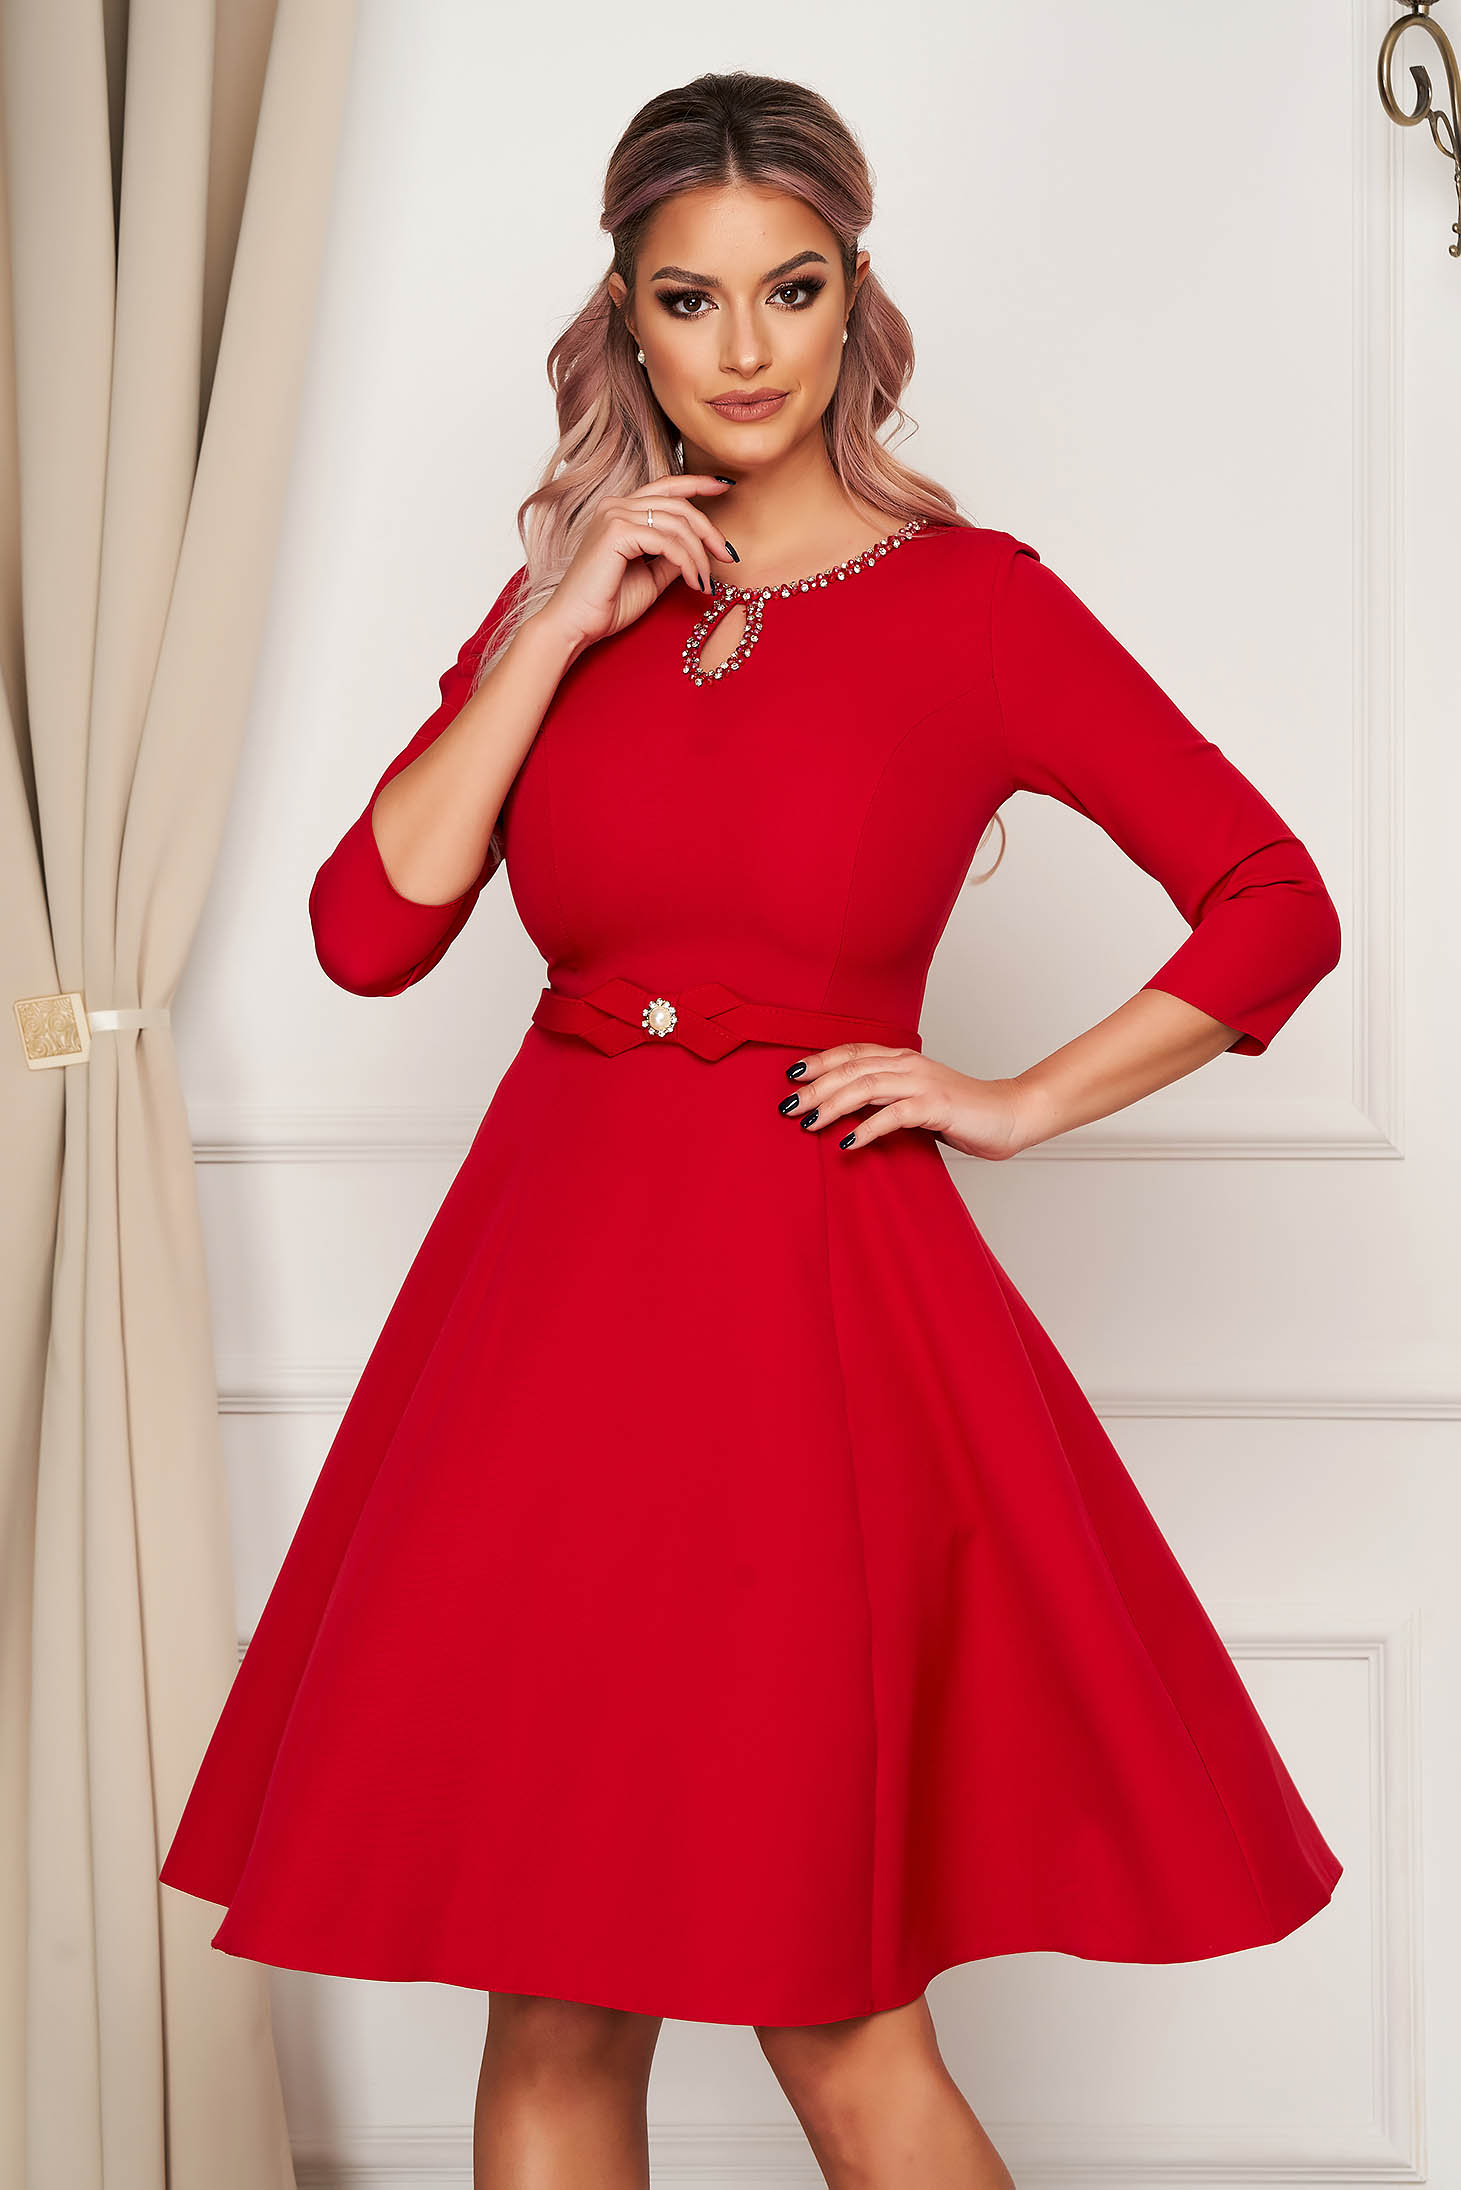 Red dress midi elegant cloche cloth with crystal embellished details